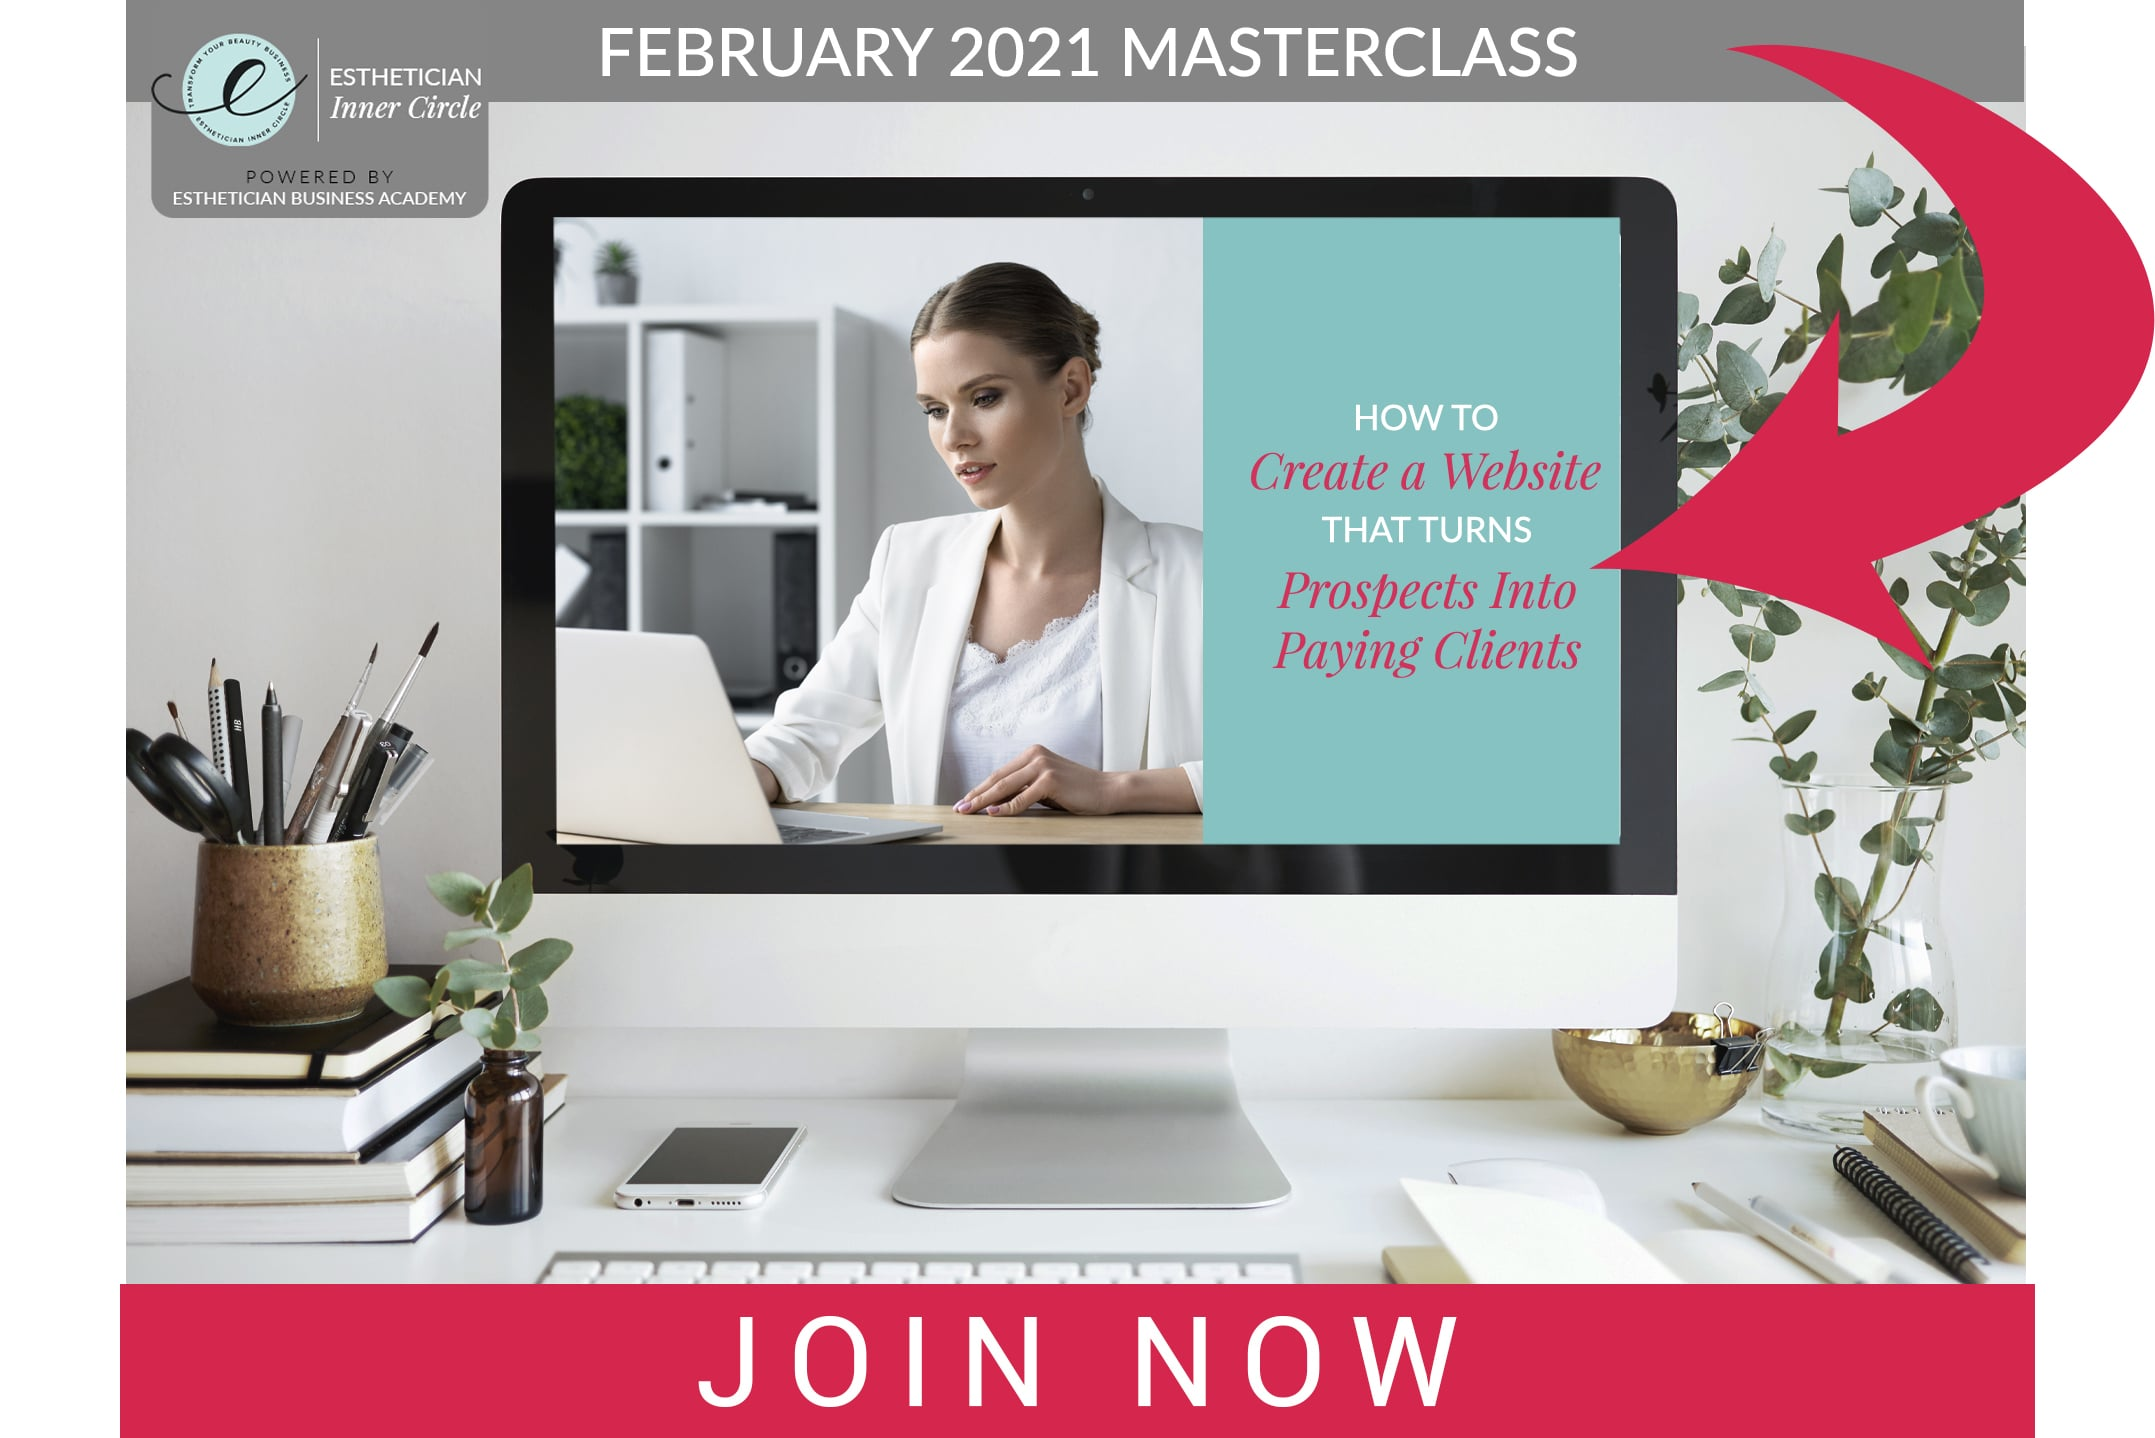 Esthetician Inner Circle Masterclass - Create a Website That Converts Clients